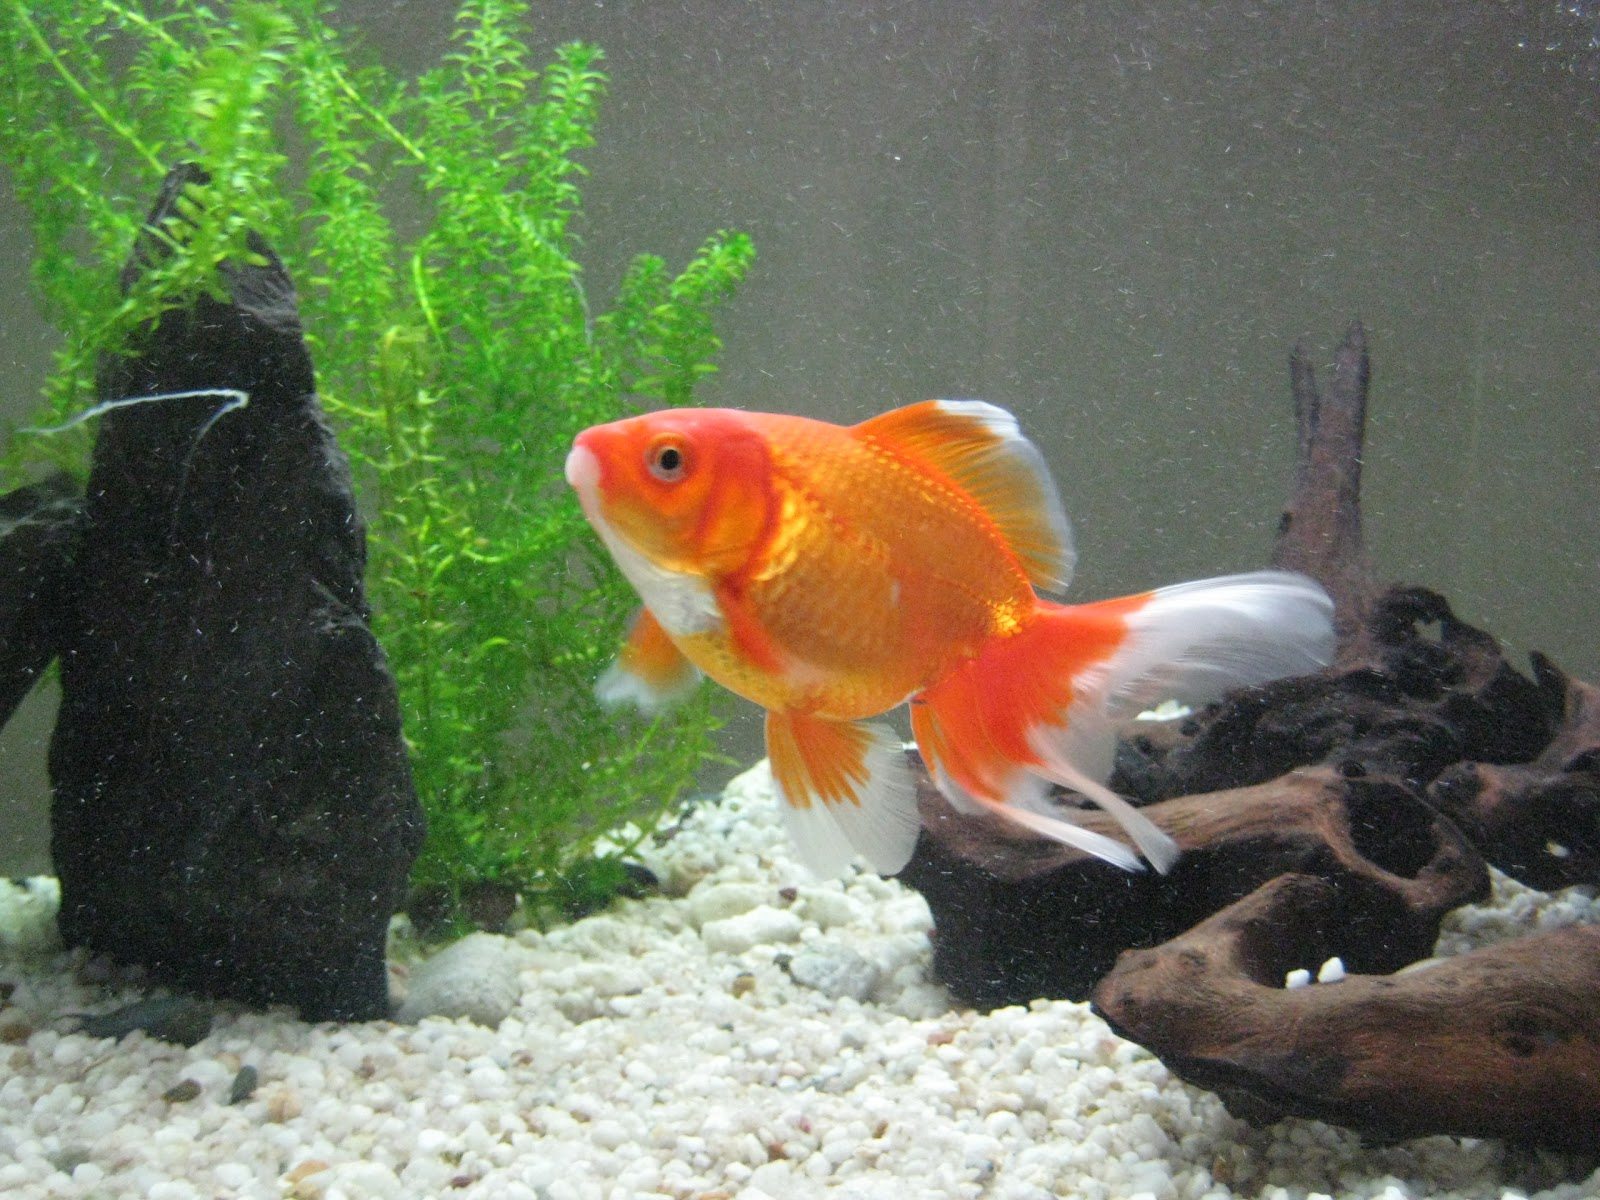 Catherine South: The Color Changing Goldfish